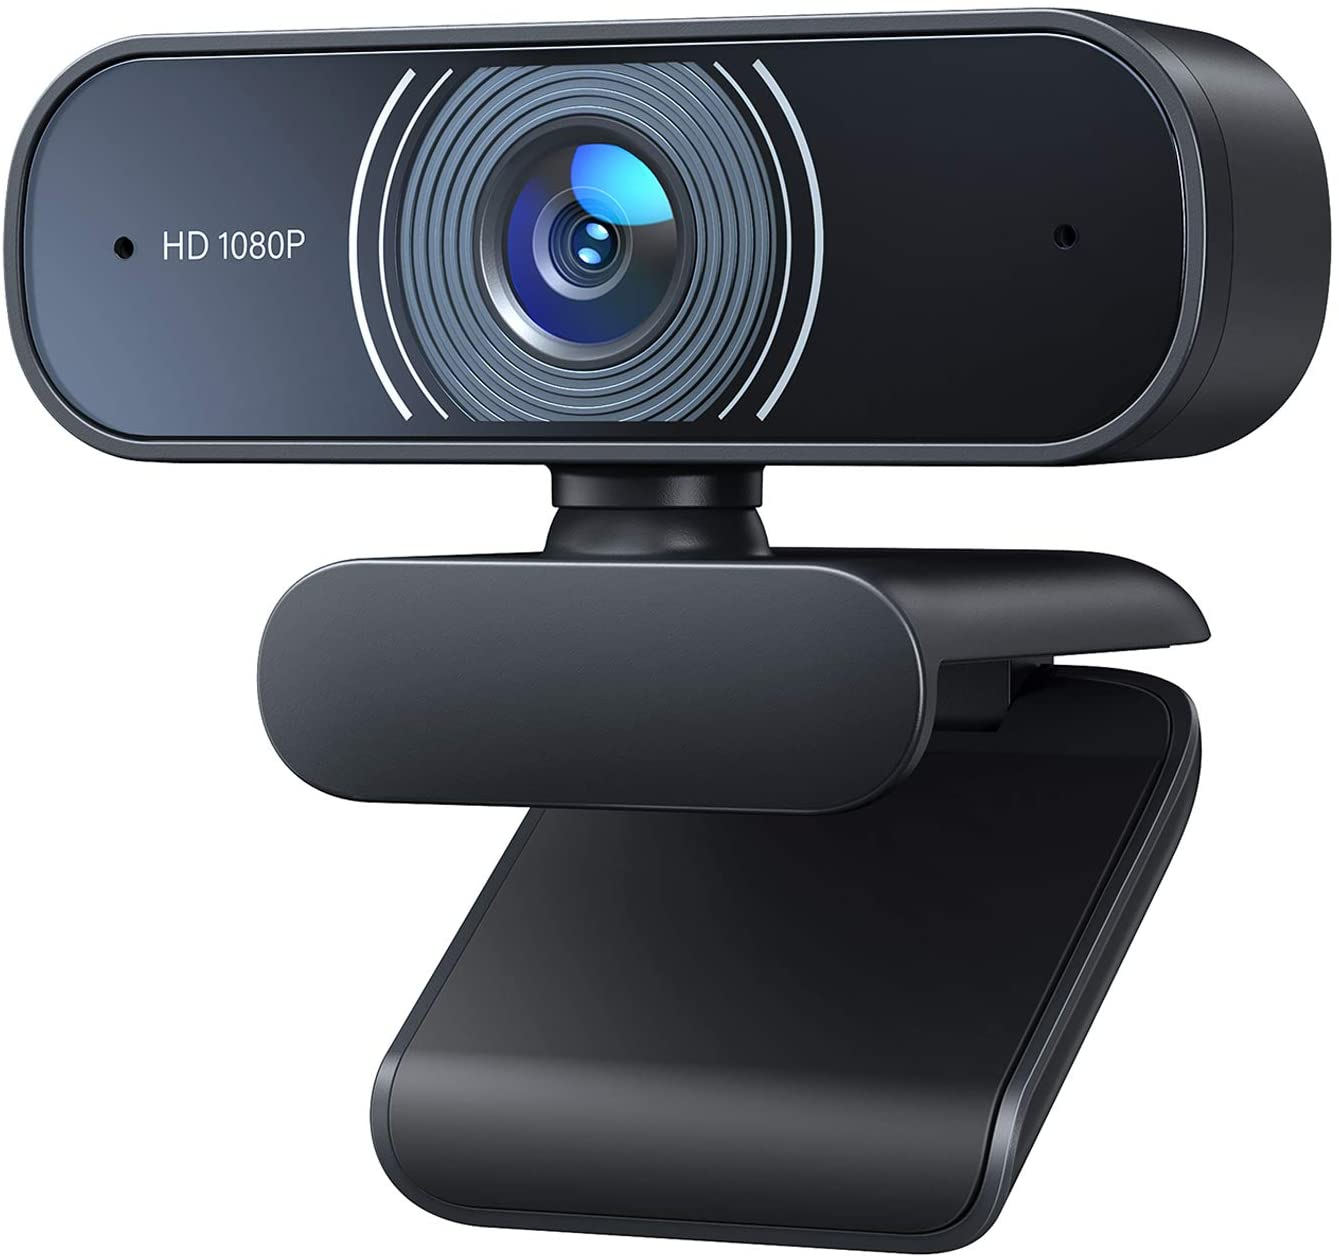 USB Plug and Play Full HD Video Camera for Computers PC Laptop Desktop Dual Built-in Microphones Conference Video Calling RALENO 1080P Webcam Streaming